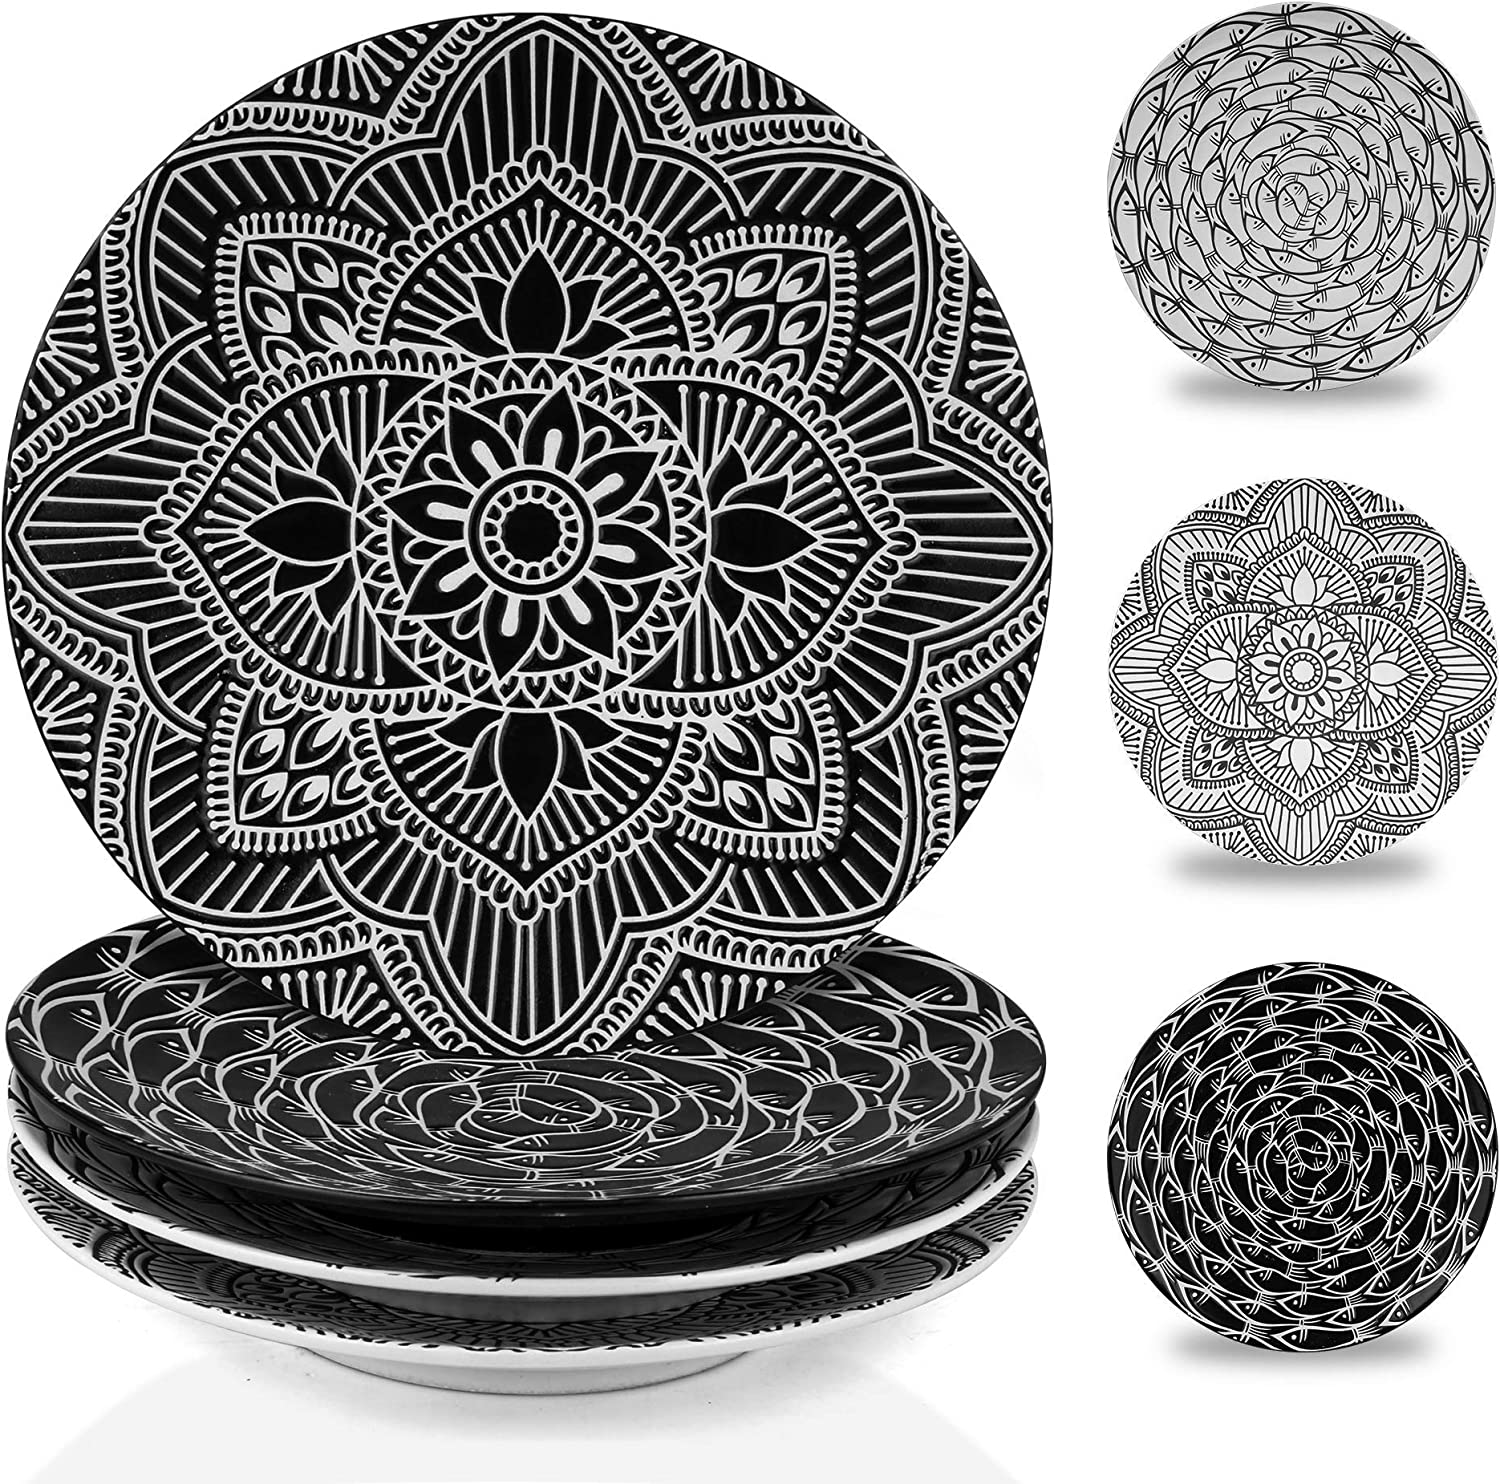 MARSTRACE 8.25 Inch Ceramic Salad Plates,Black and White Plates Porcelain Dinner Plates with Floral Pattern for Desserts Sandwiches Serving ,Set of 4,Microwave Dishwasher Safe